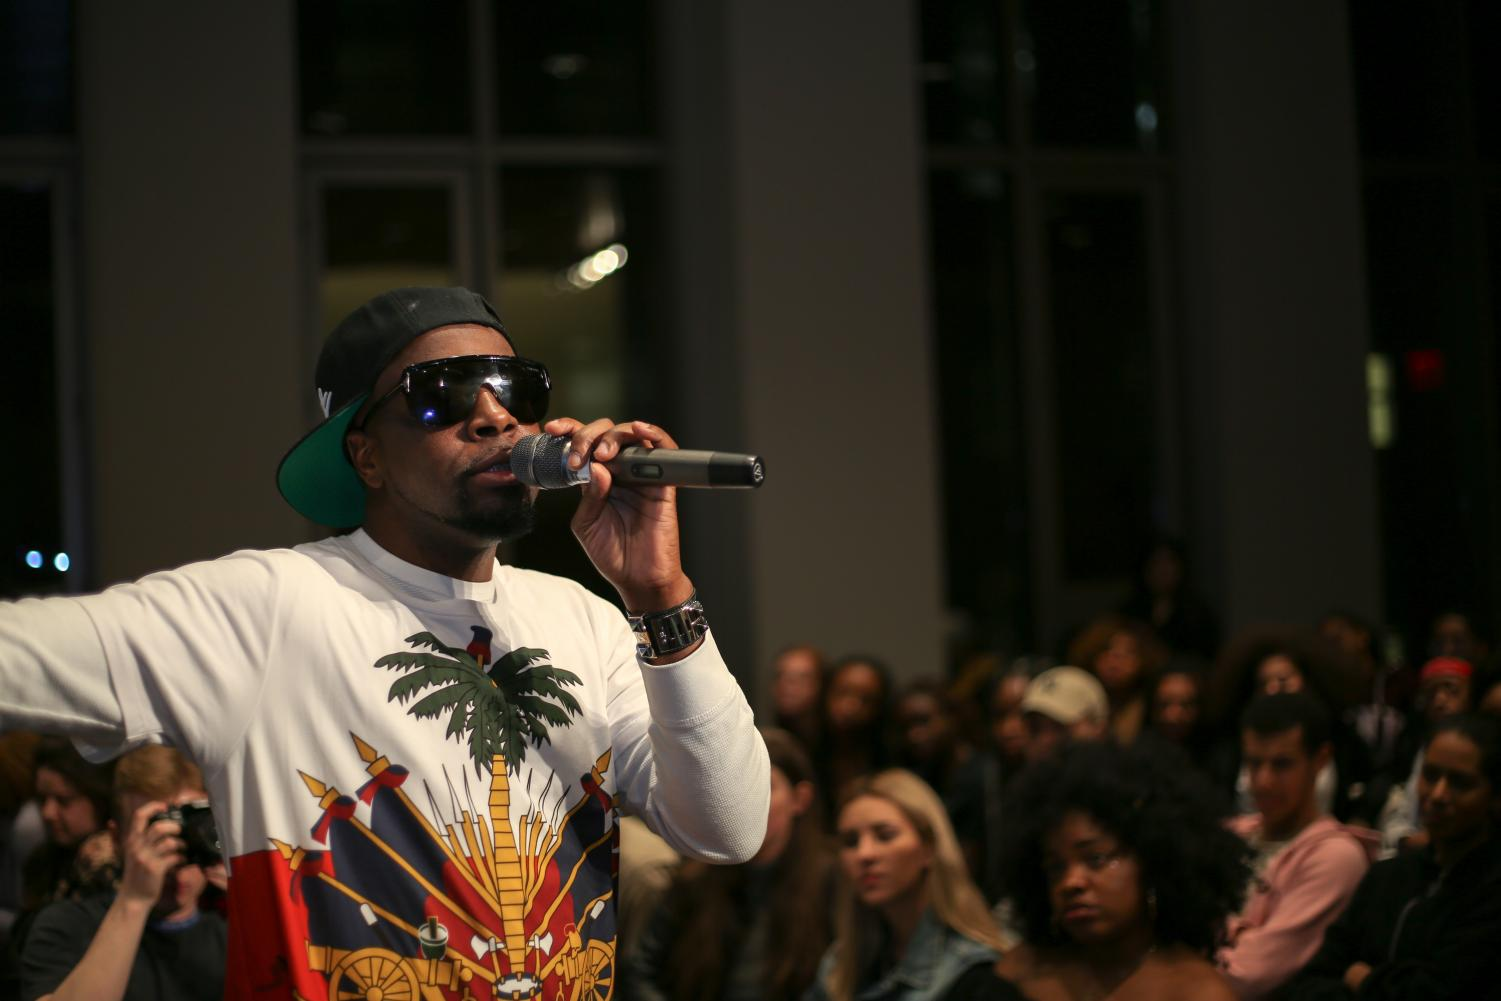 Rapper and musician Wyclef Jean performs during an event at the NYU Global Center for Academic and Spiritual Life on Feb. 13, marking the end of his masterclass in the Clive Davis Institute of Recorded Music.